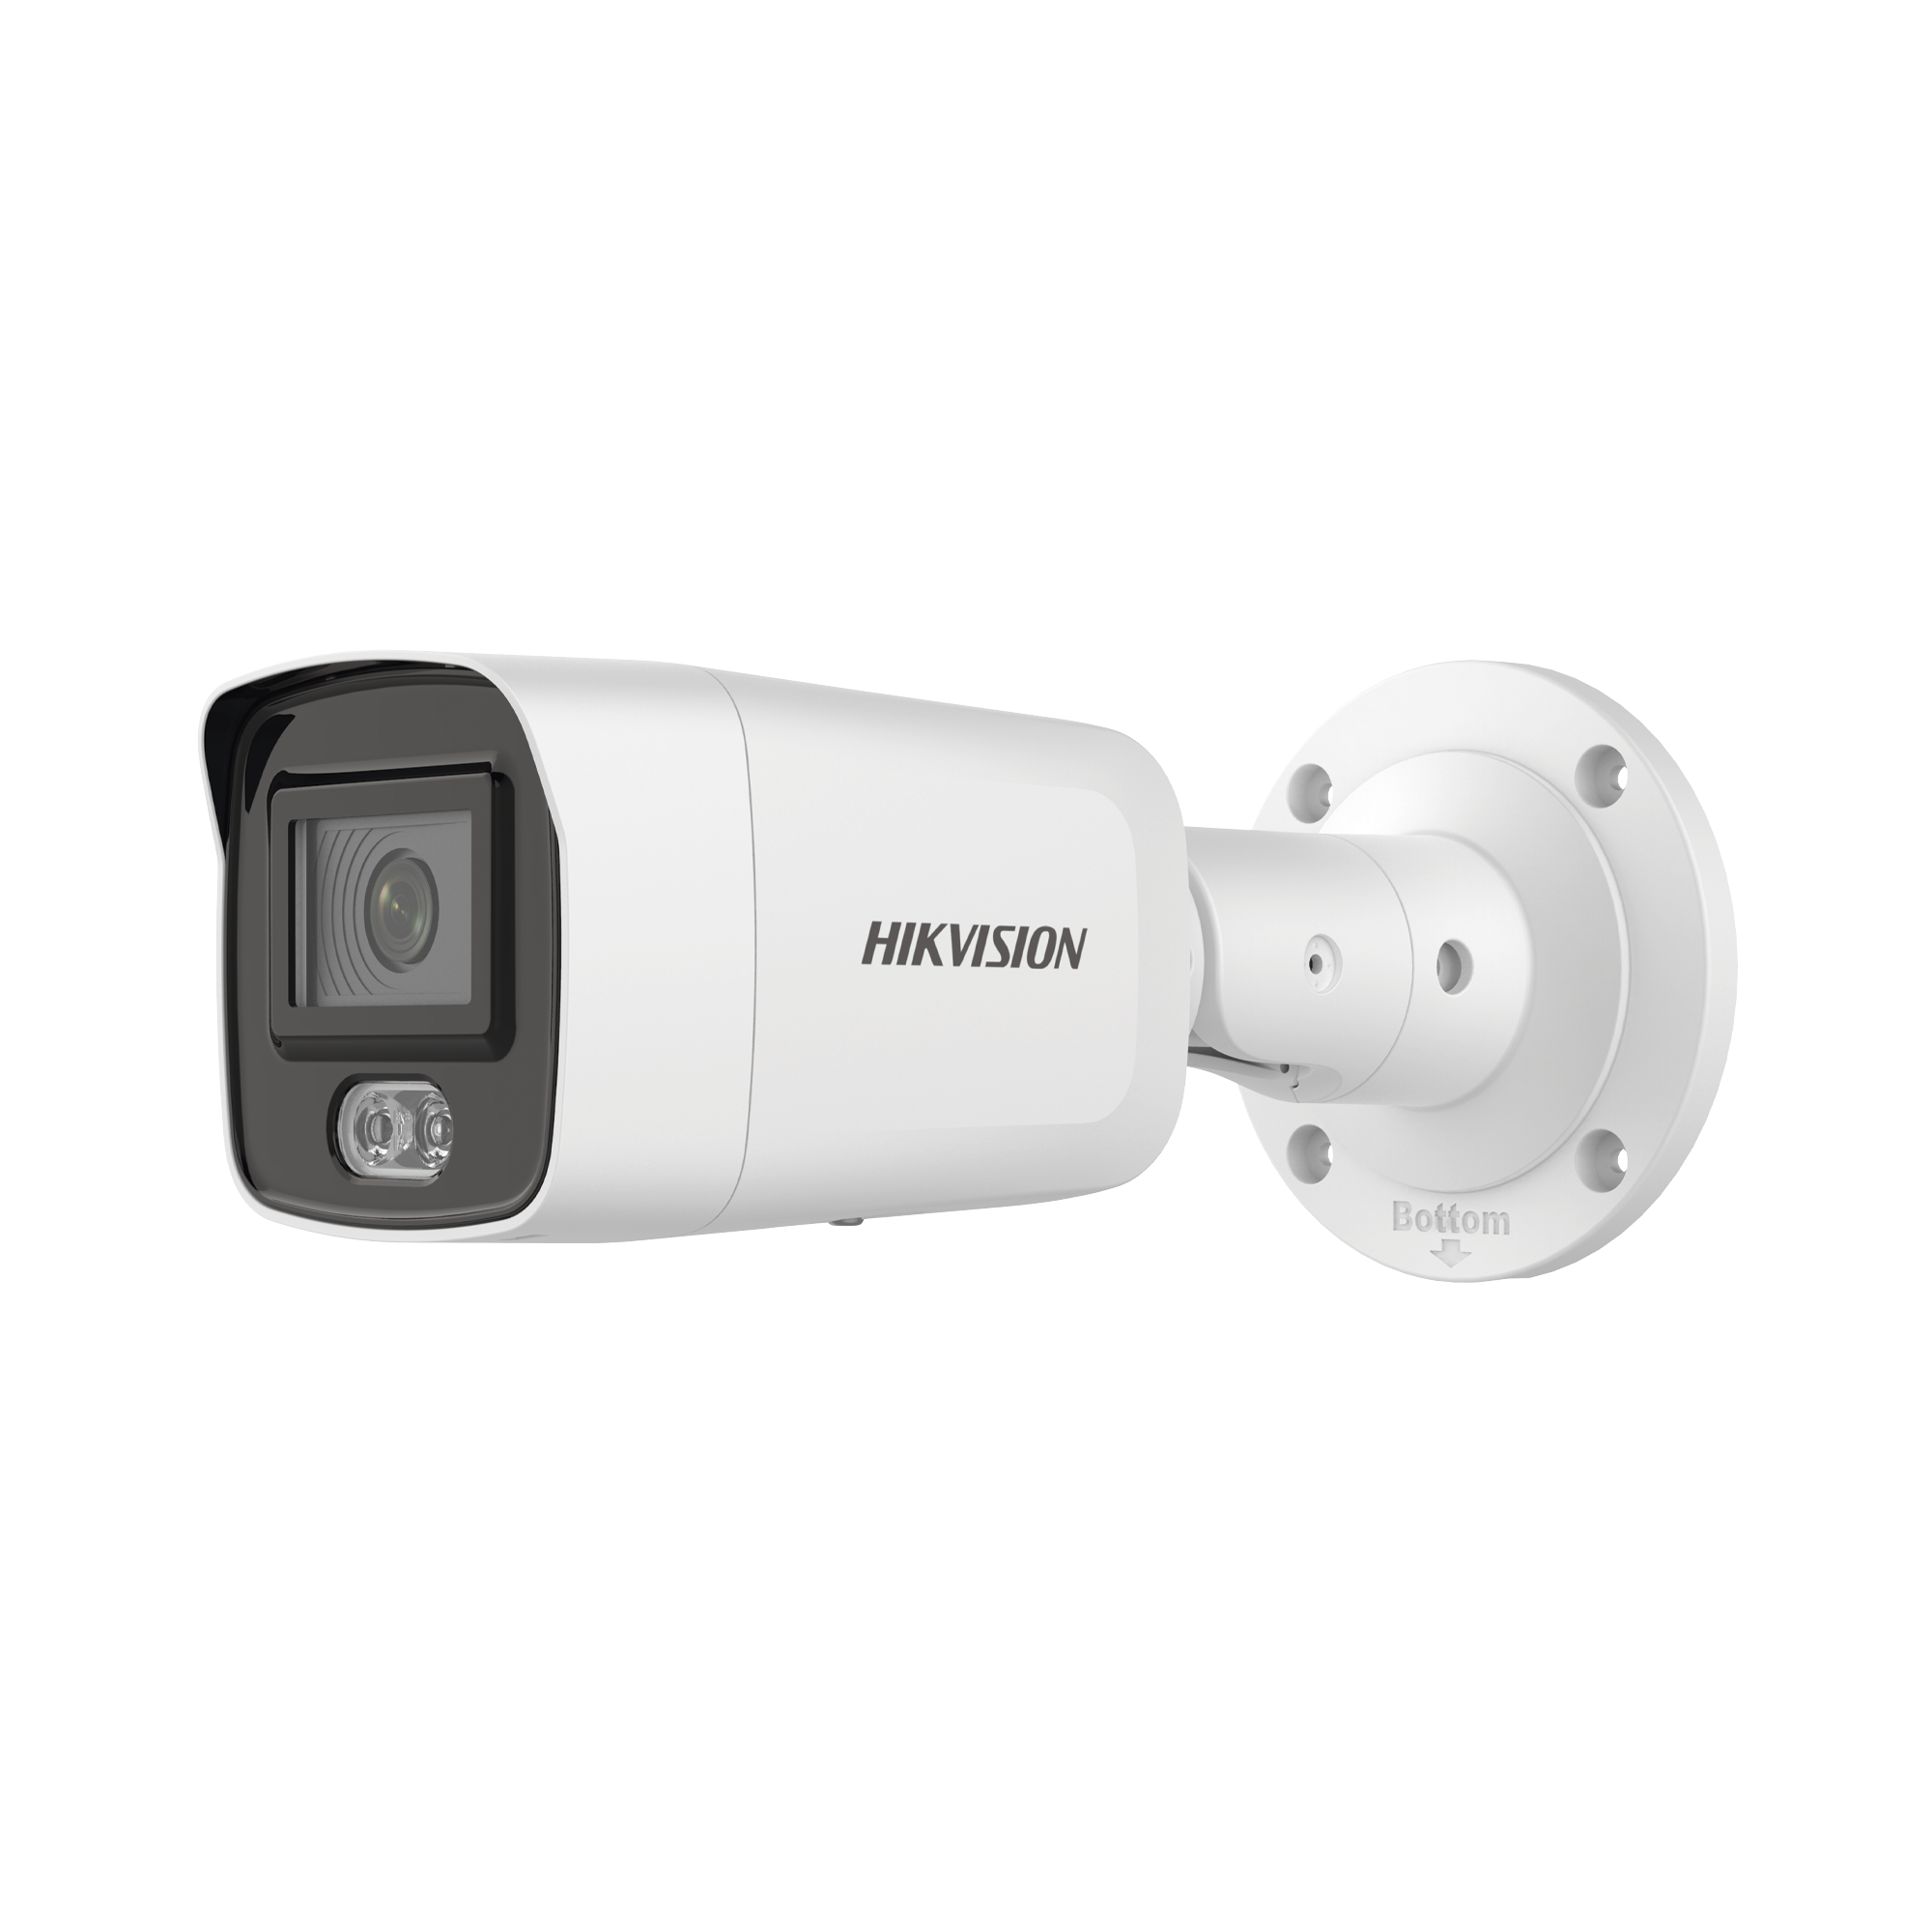 Bala IP 4 Megapixel / Imagen a color 24/7 / Lente 4 mm / Luz Blanca 40 mts / Exterior IP67 / WDR 120 dB / Audio y Alarma / Captura Facial